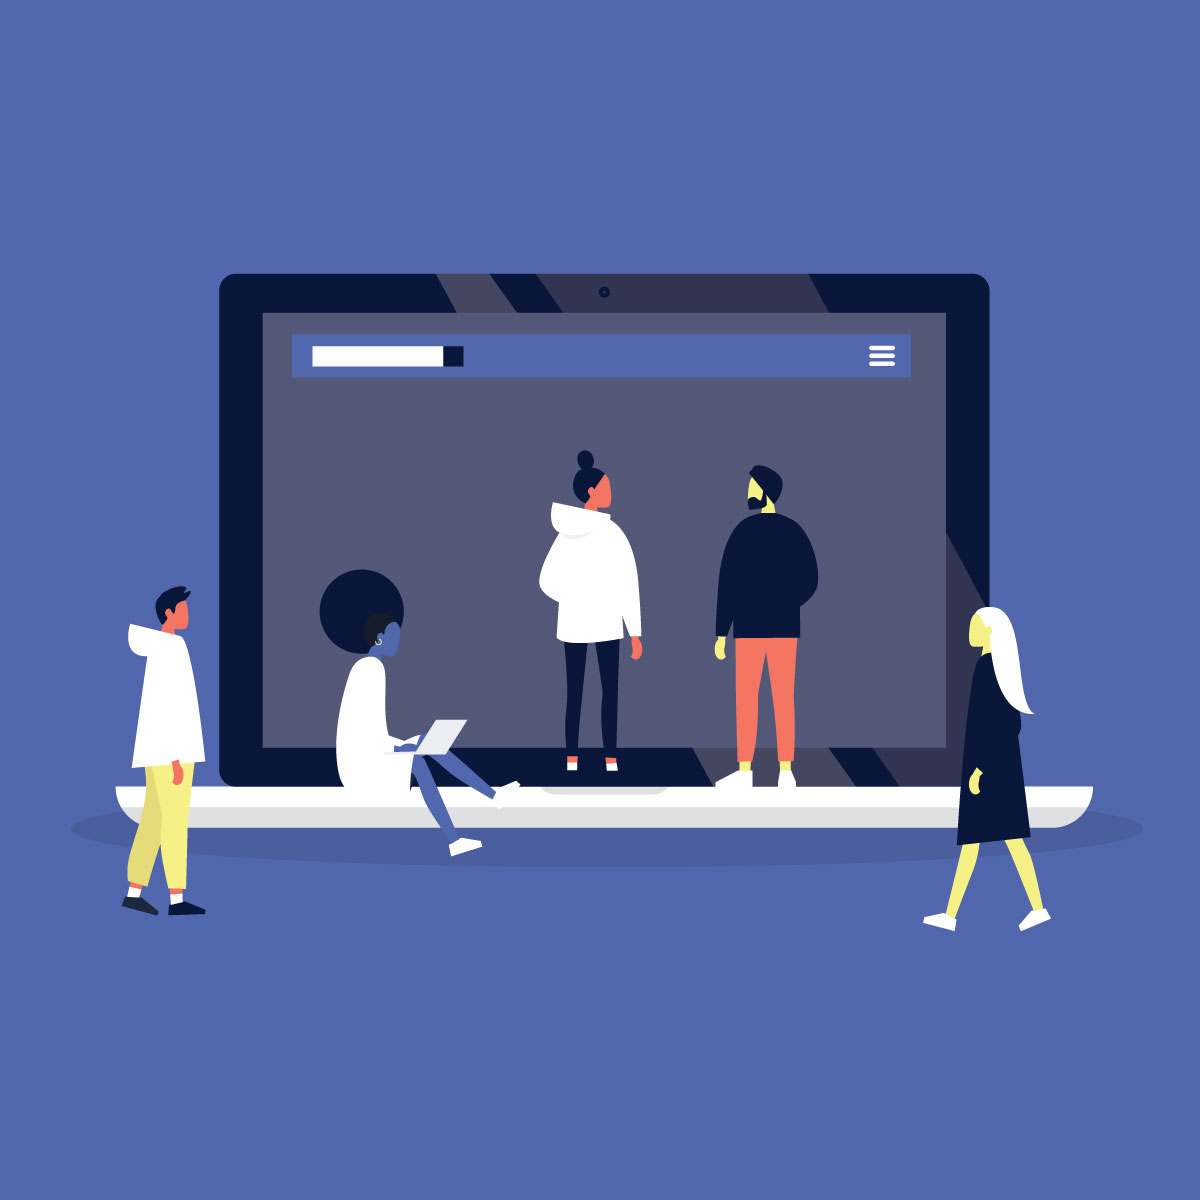 Illustration of several people mingling around giant laptop.